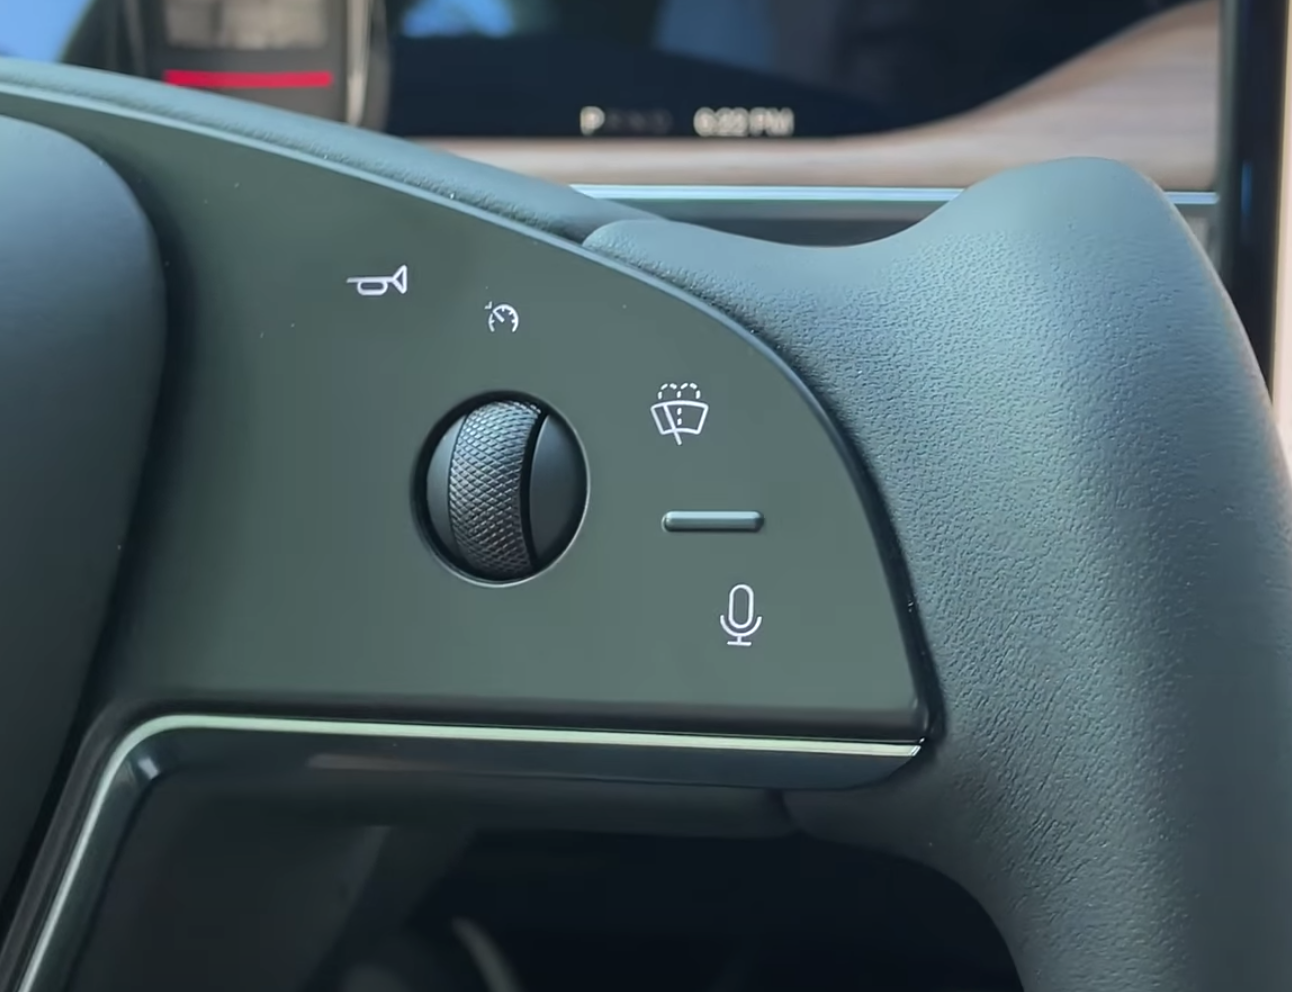 A photo of the buttons and dials on the steering wheel